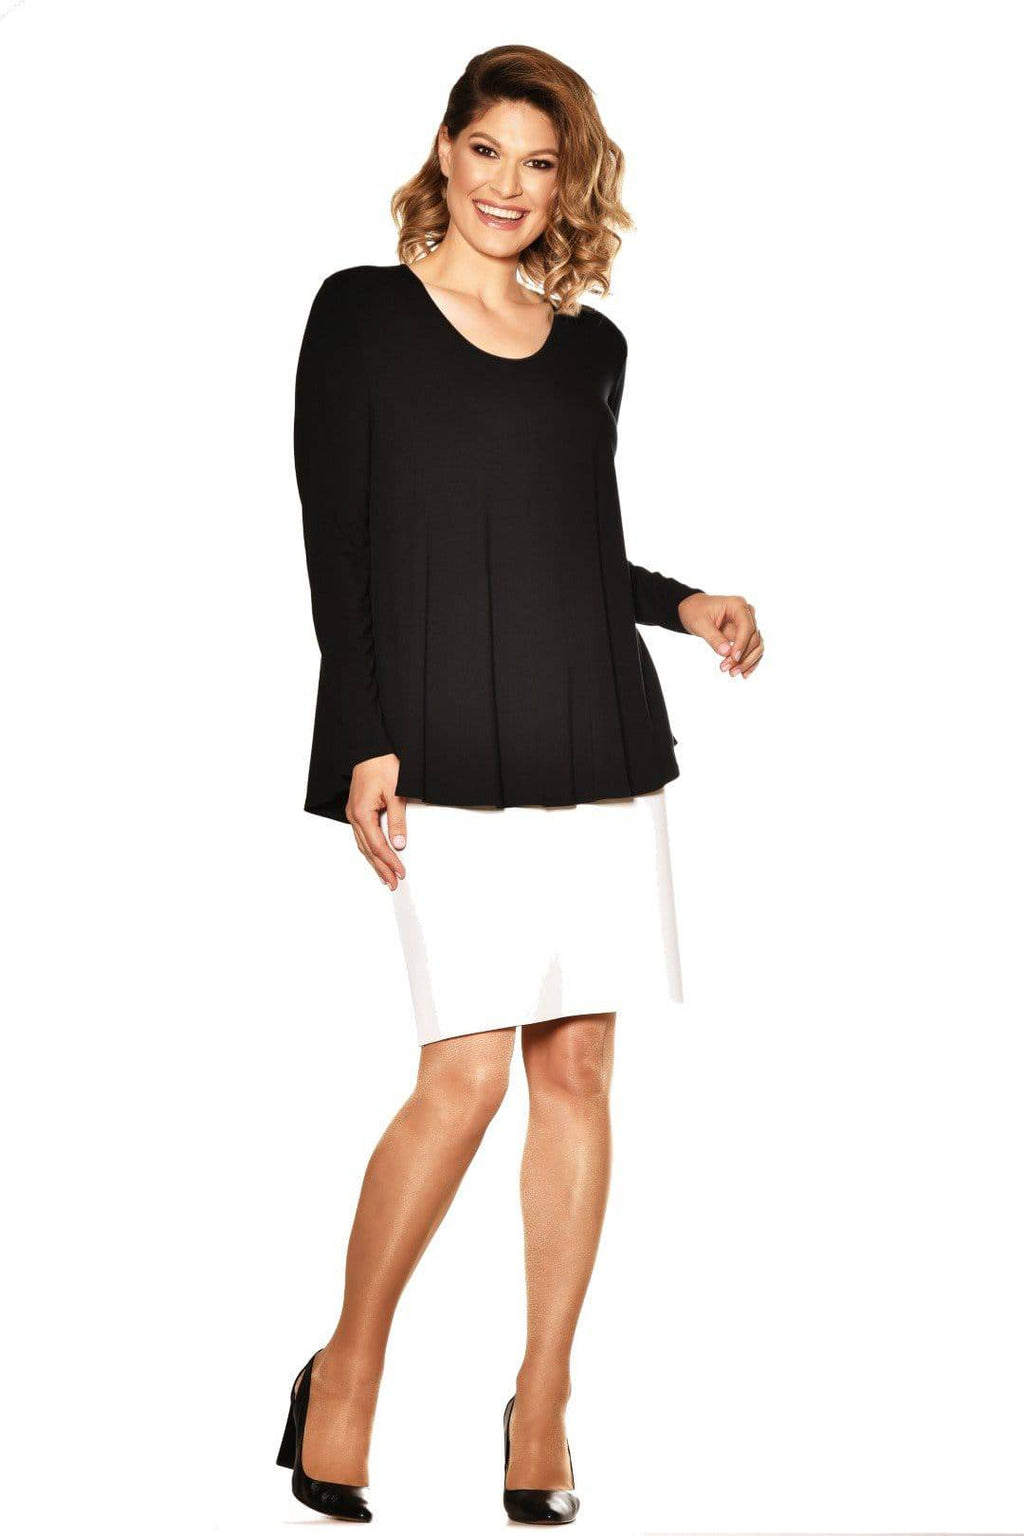 PAULA RYAN ESSENTIALS Scoop Neck Long Sleeve Swing Tunic - MicroModal - Top - Paula Ryan Essentials - Paula Ryan